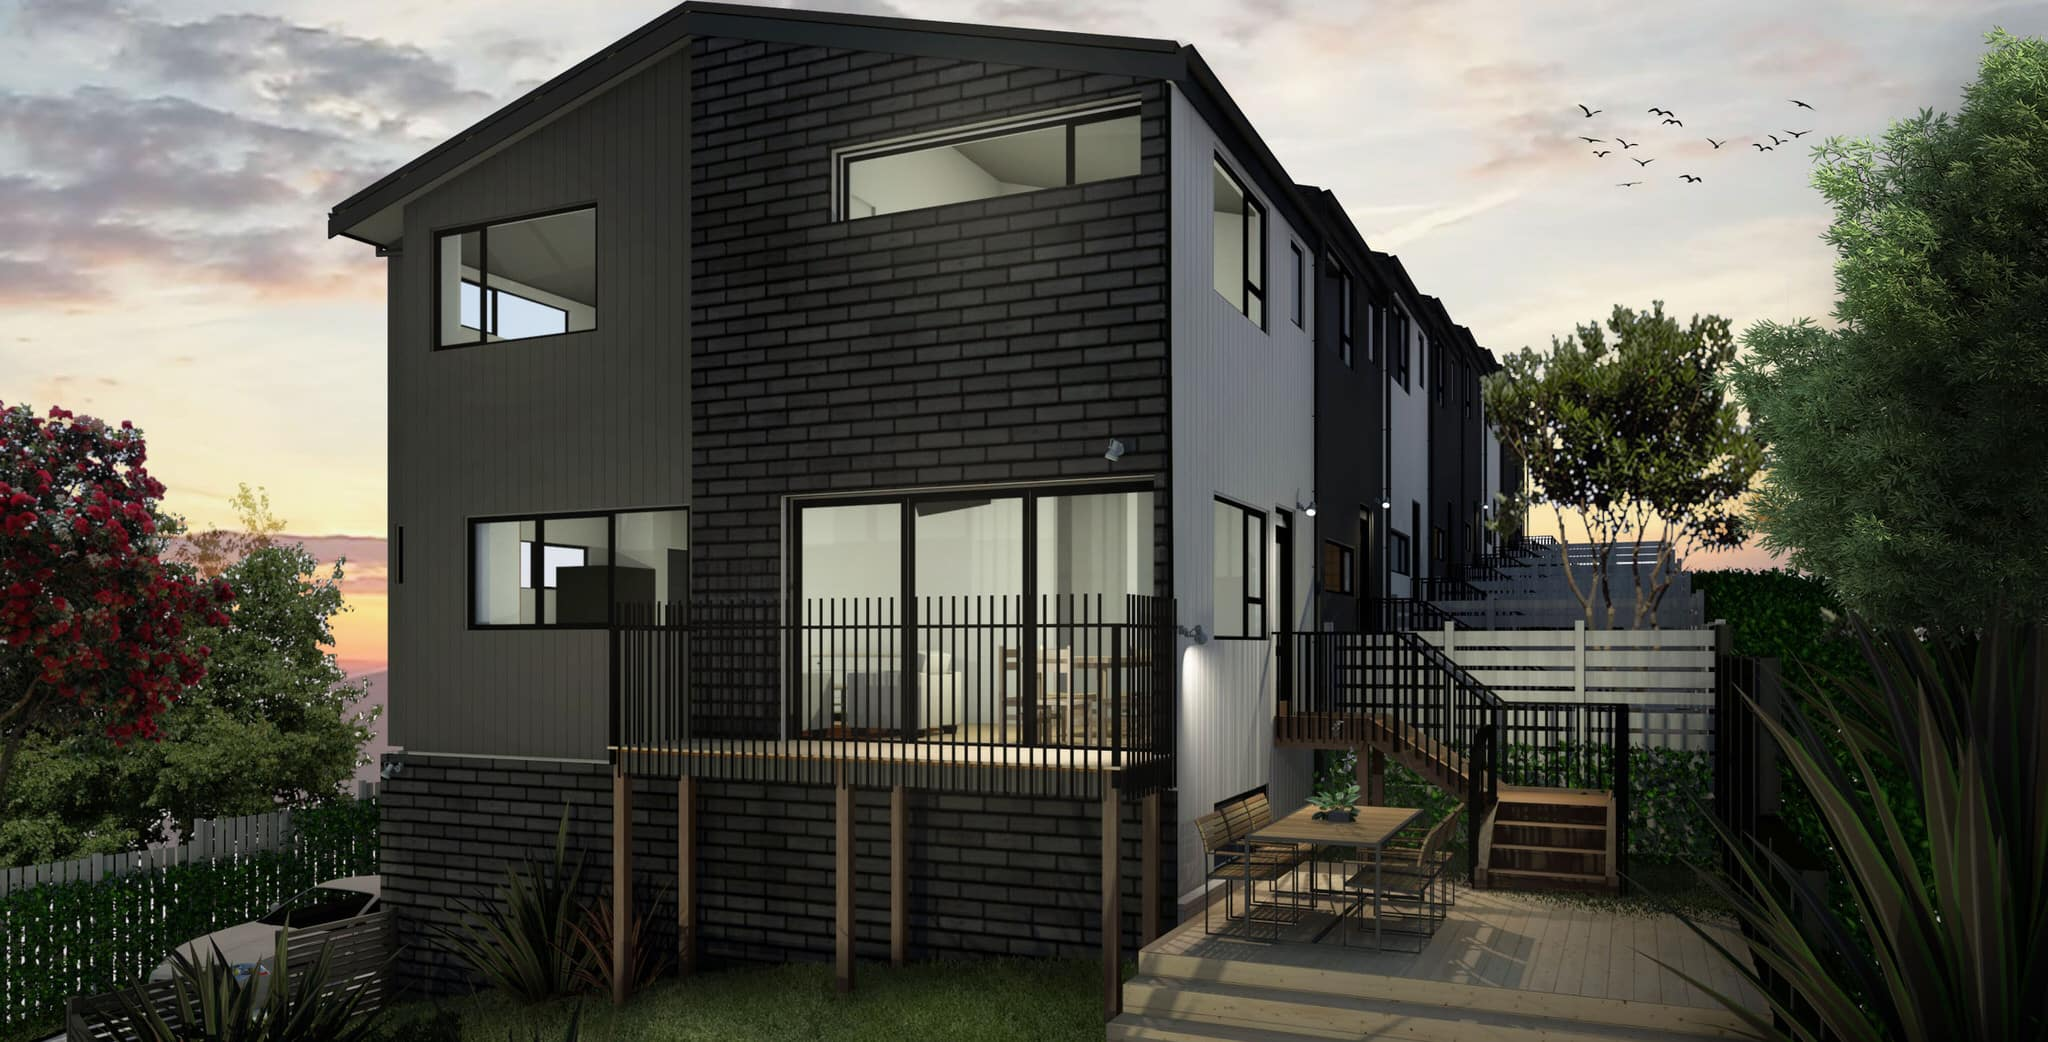 Glendowie Terraced Housing, Auckland - front view 2